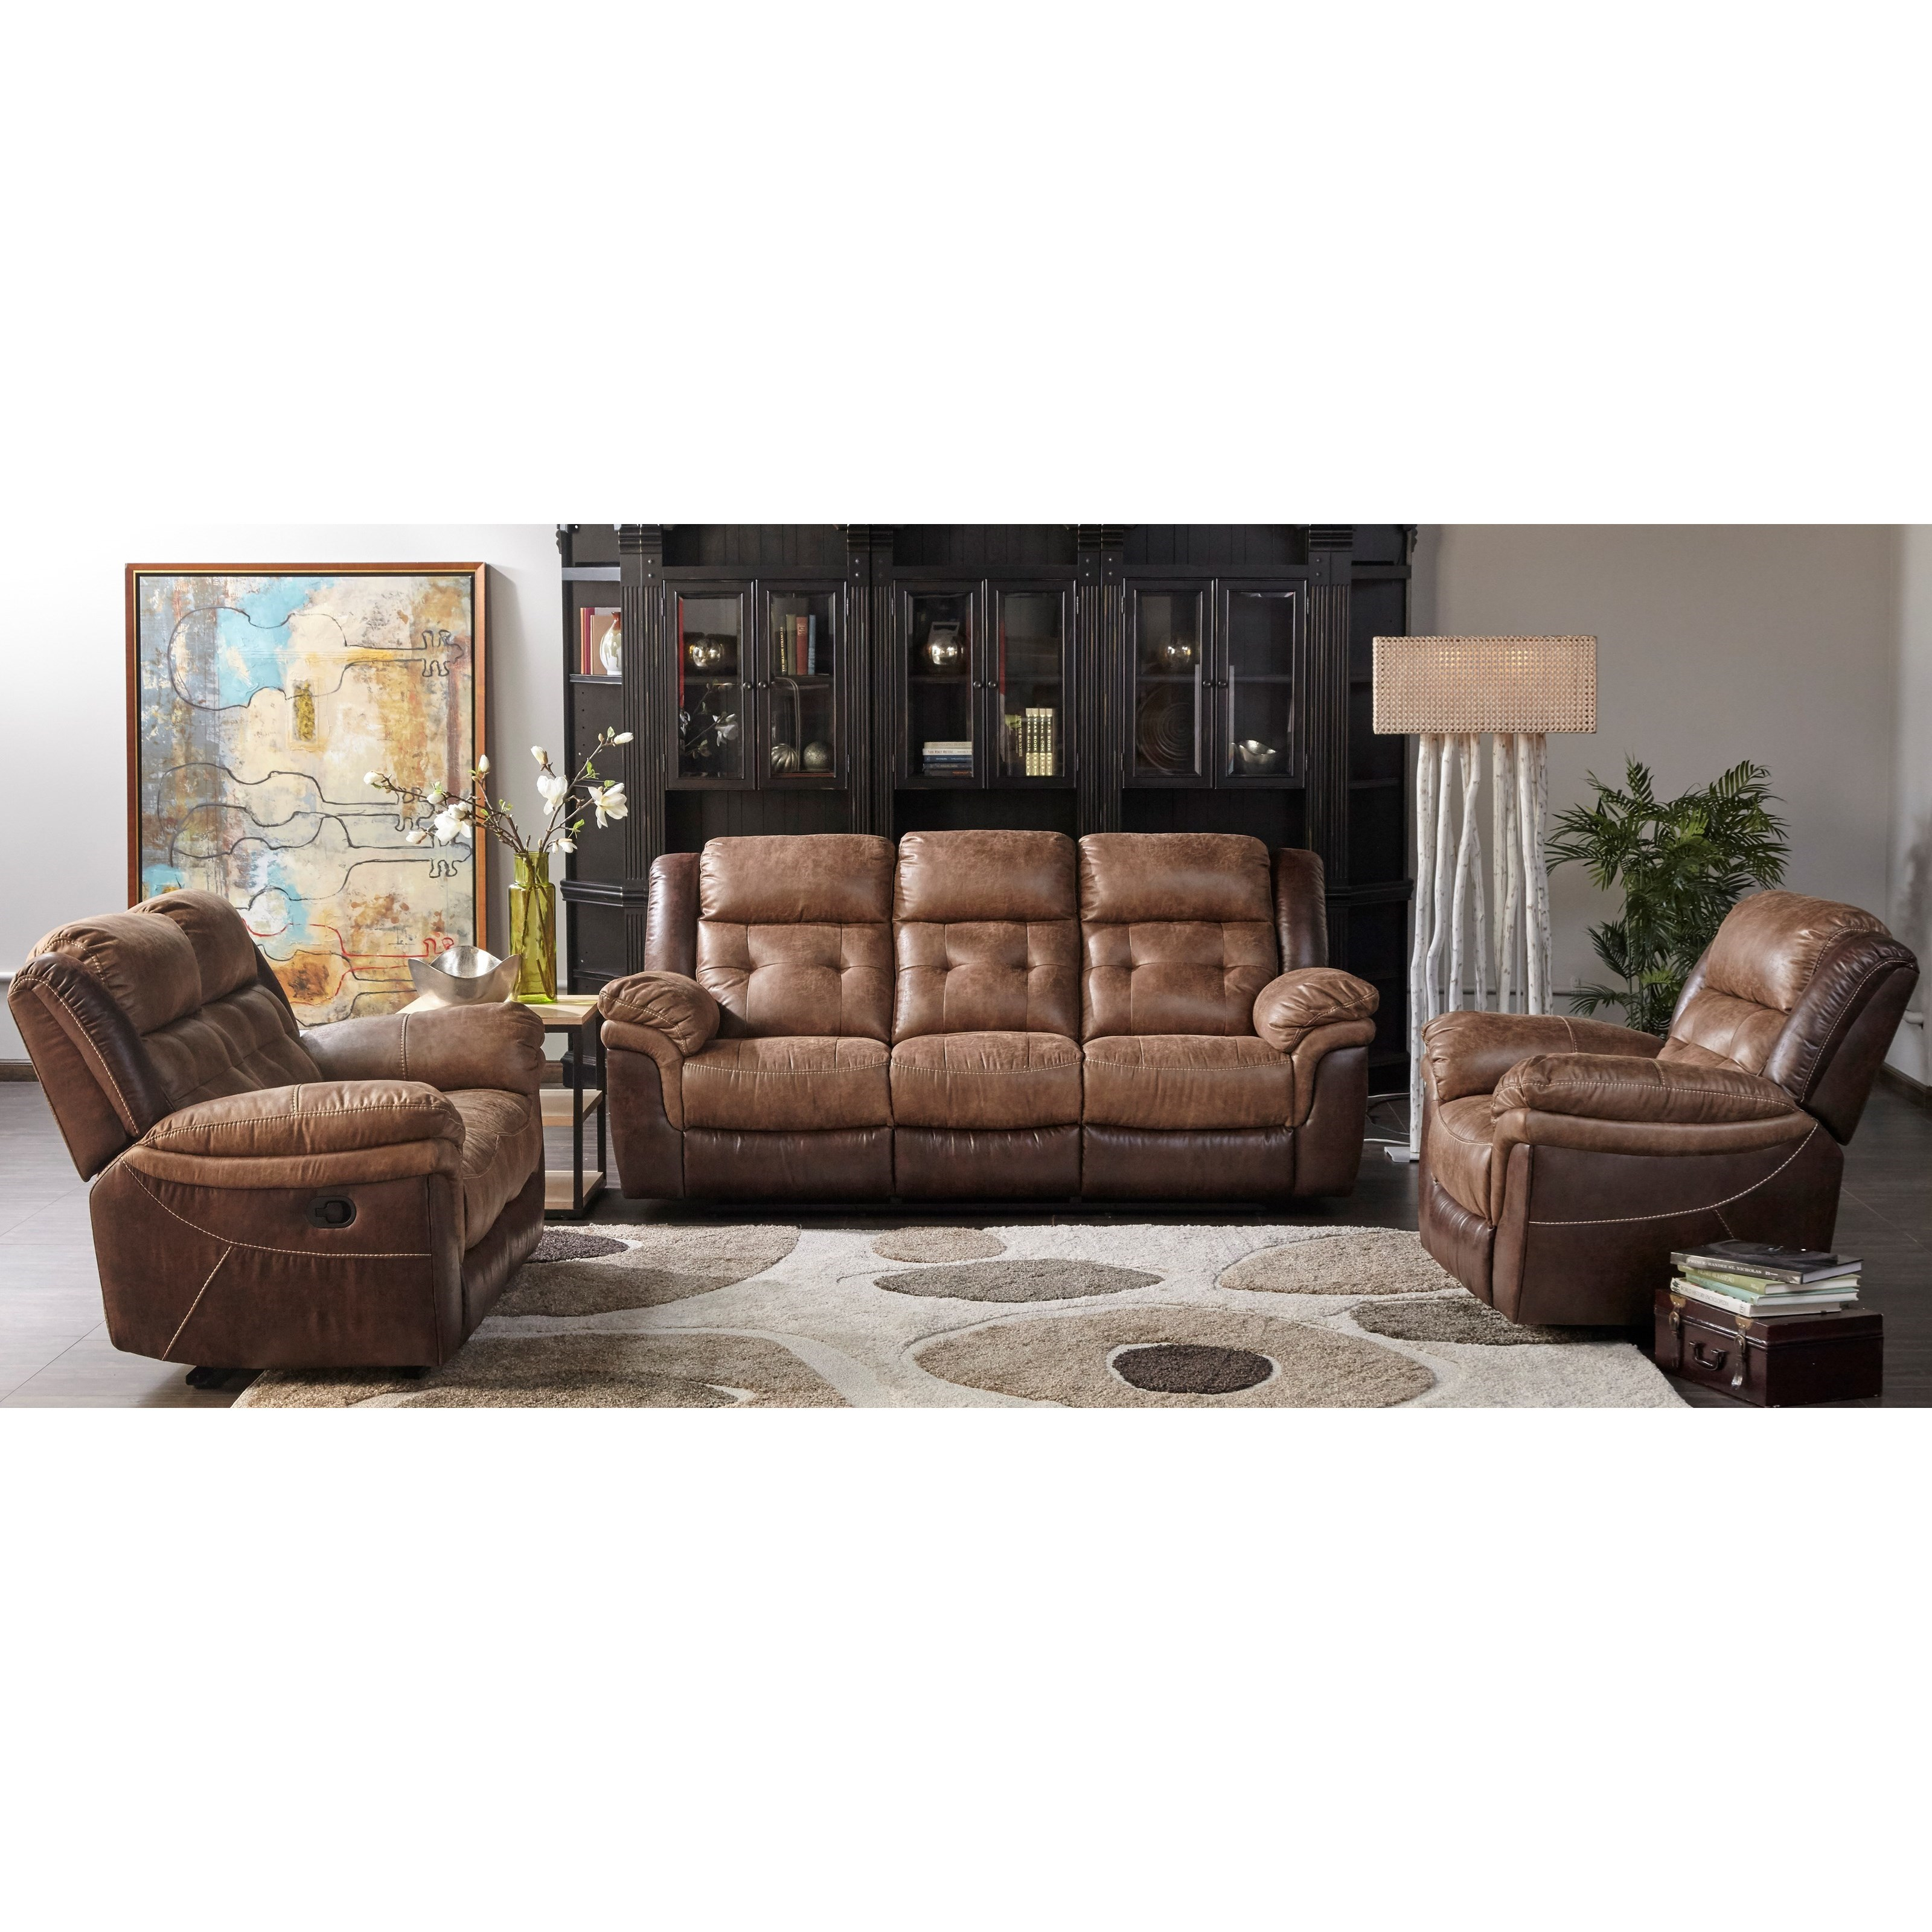 Cheers Sofa Xw5156m Xw5156m L1 1k Glider Recliner With Pillow Arms Great American Home Store